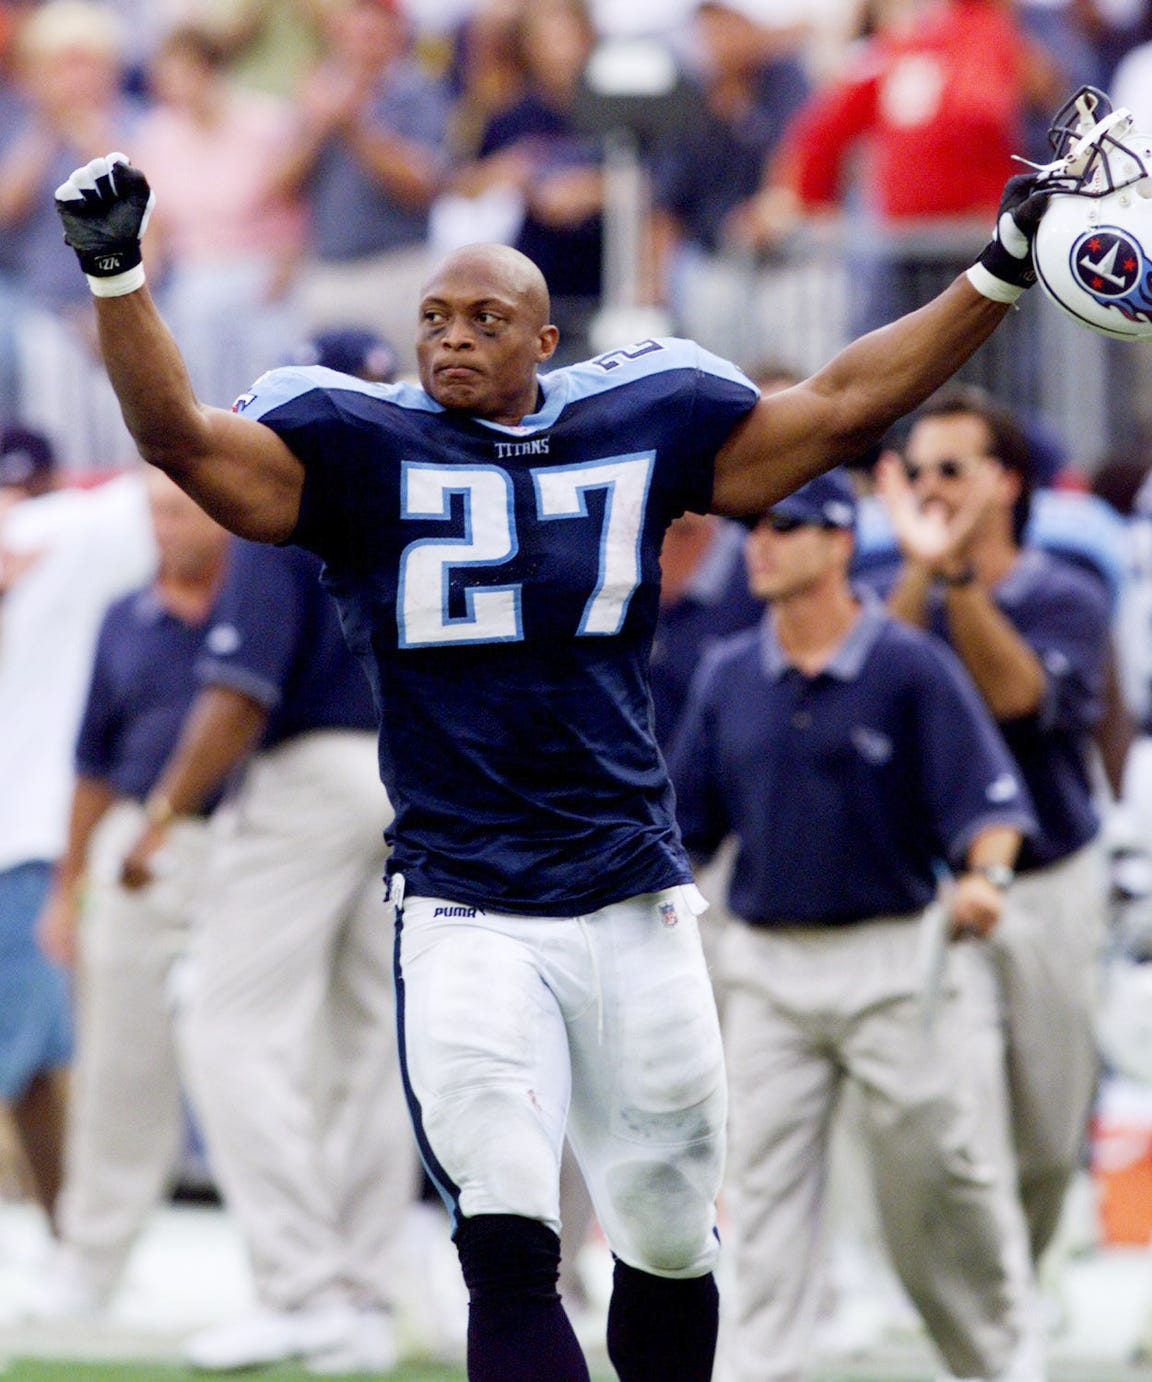 Tennessee Titans running back Eddie George holds his hands in the air after winning 24 to 21 over the St. Louis Rams at the Adelpha Coliseum in Nashville Oct. 31, 1999.